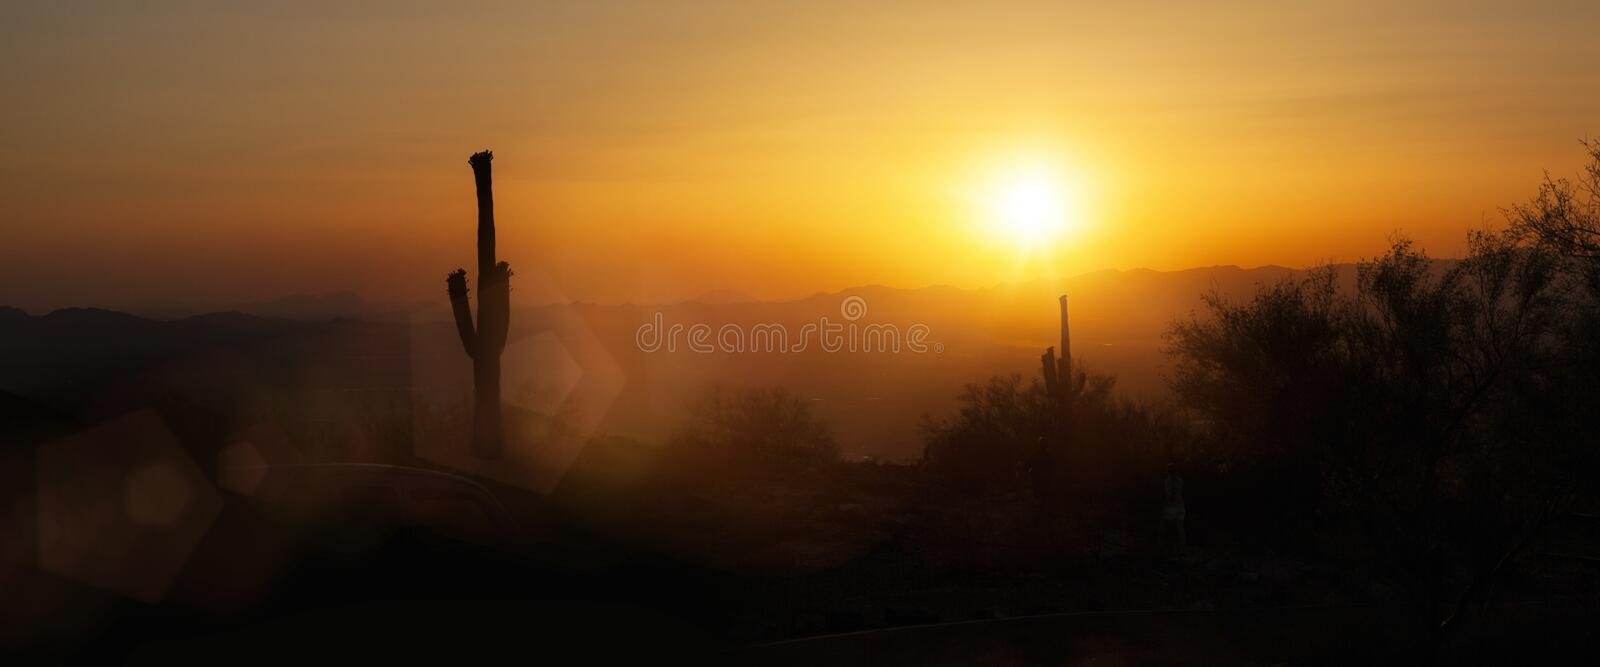 Phoenix Arizona Skyline Sunset Horizontal Banner stock photos